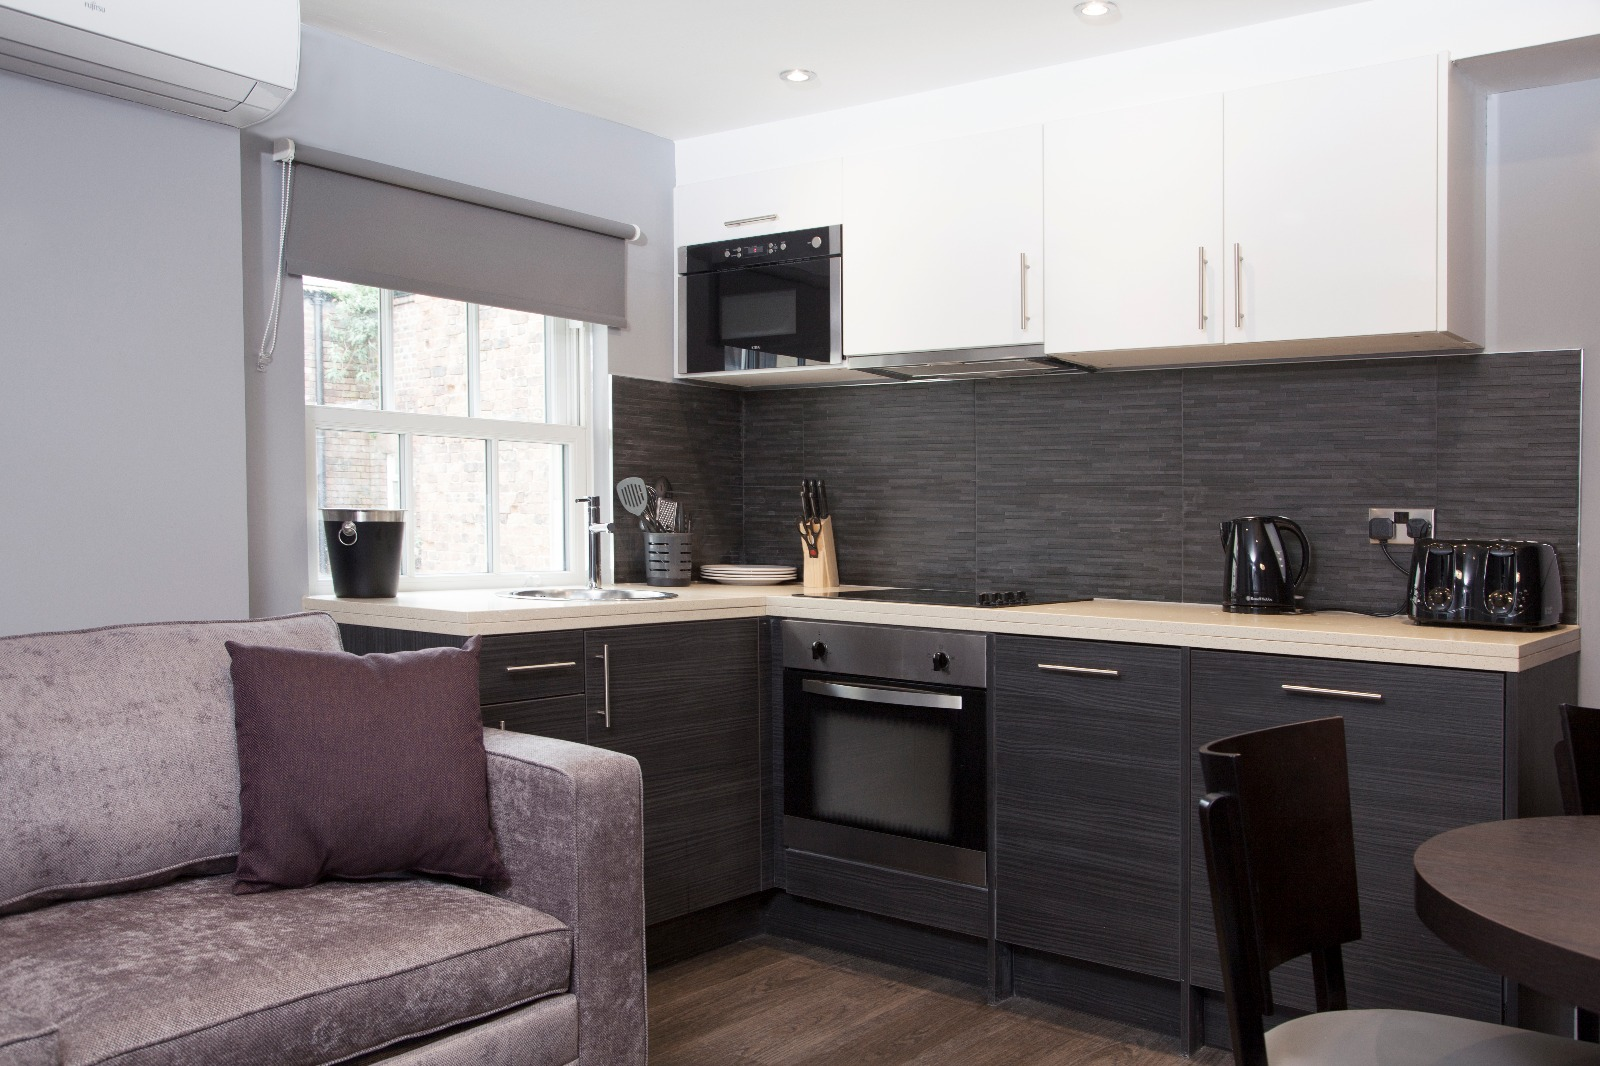 Kitchen at Duke Street Serviced Apartments - Citybase Apartments